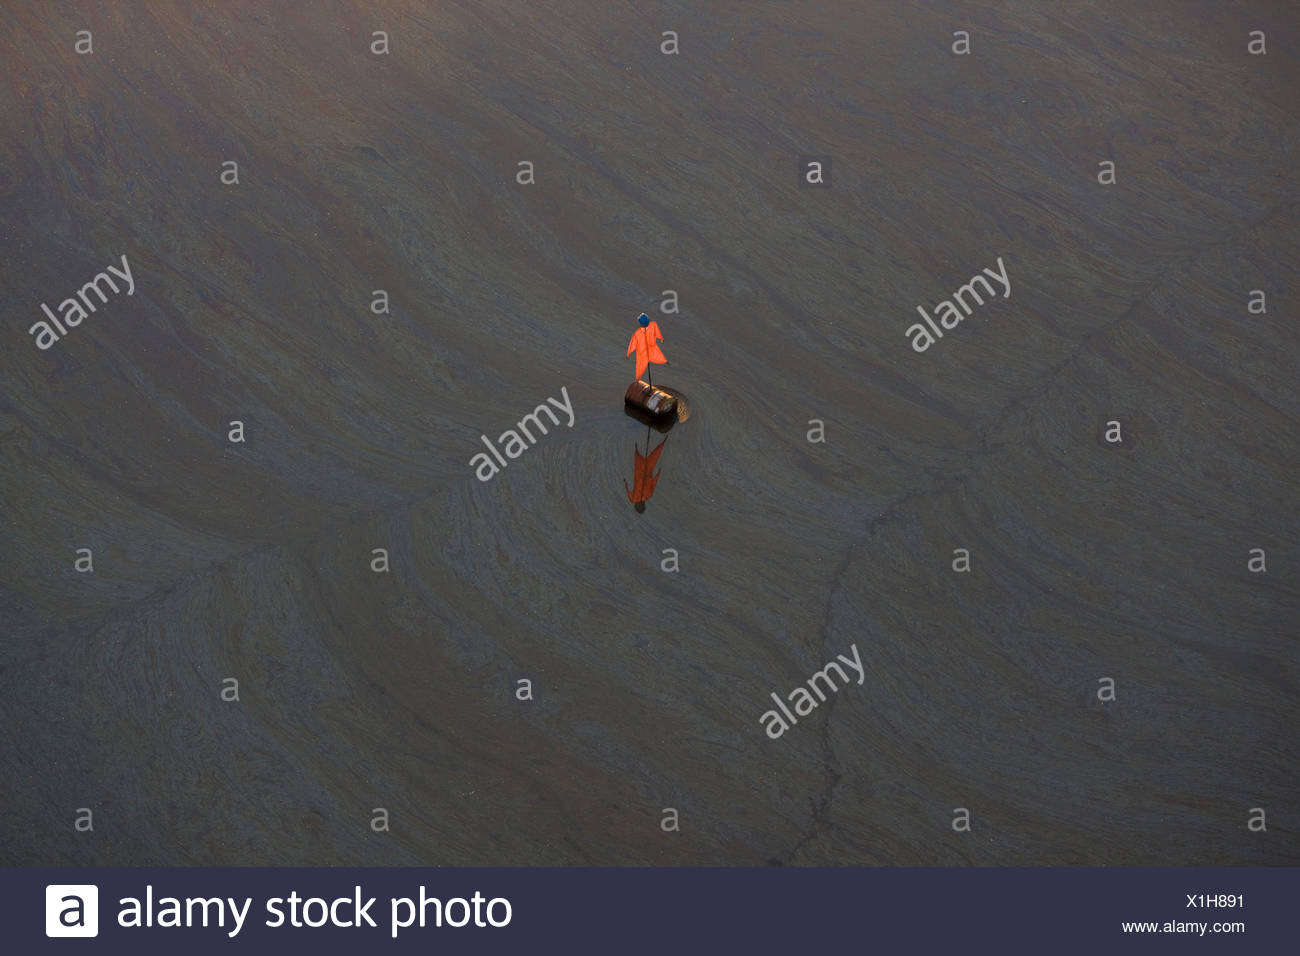 Tailings Pond and scarecrow, Suncor Millenium oil sands mine north Fort McMurray, Canada - Stock Image